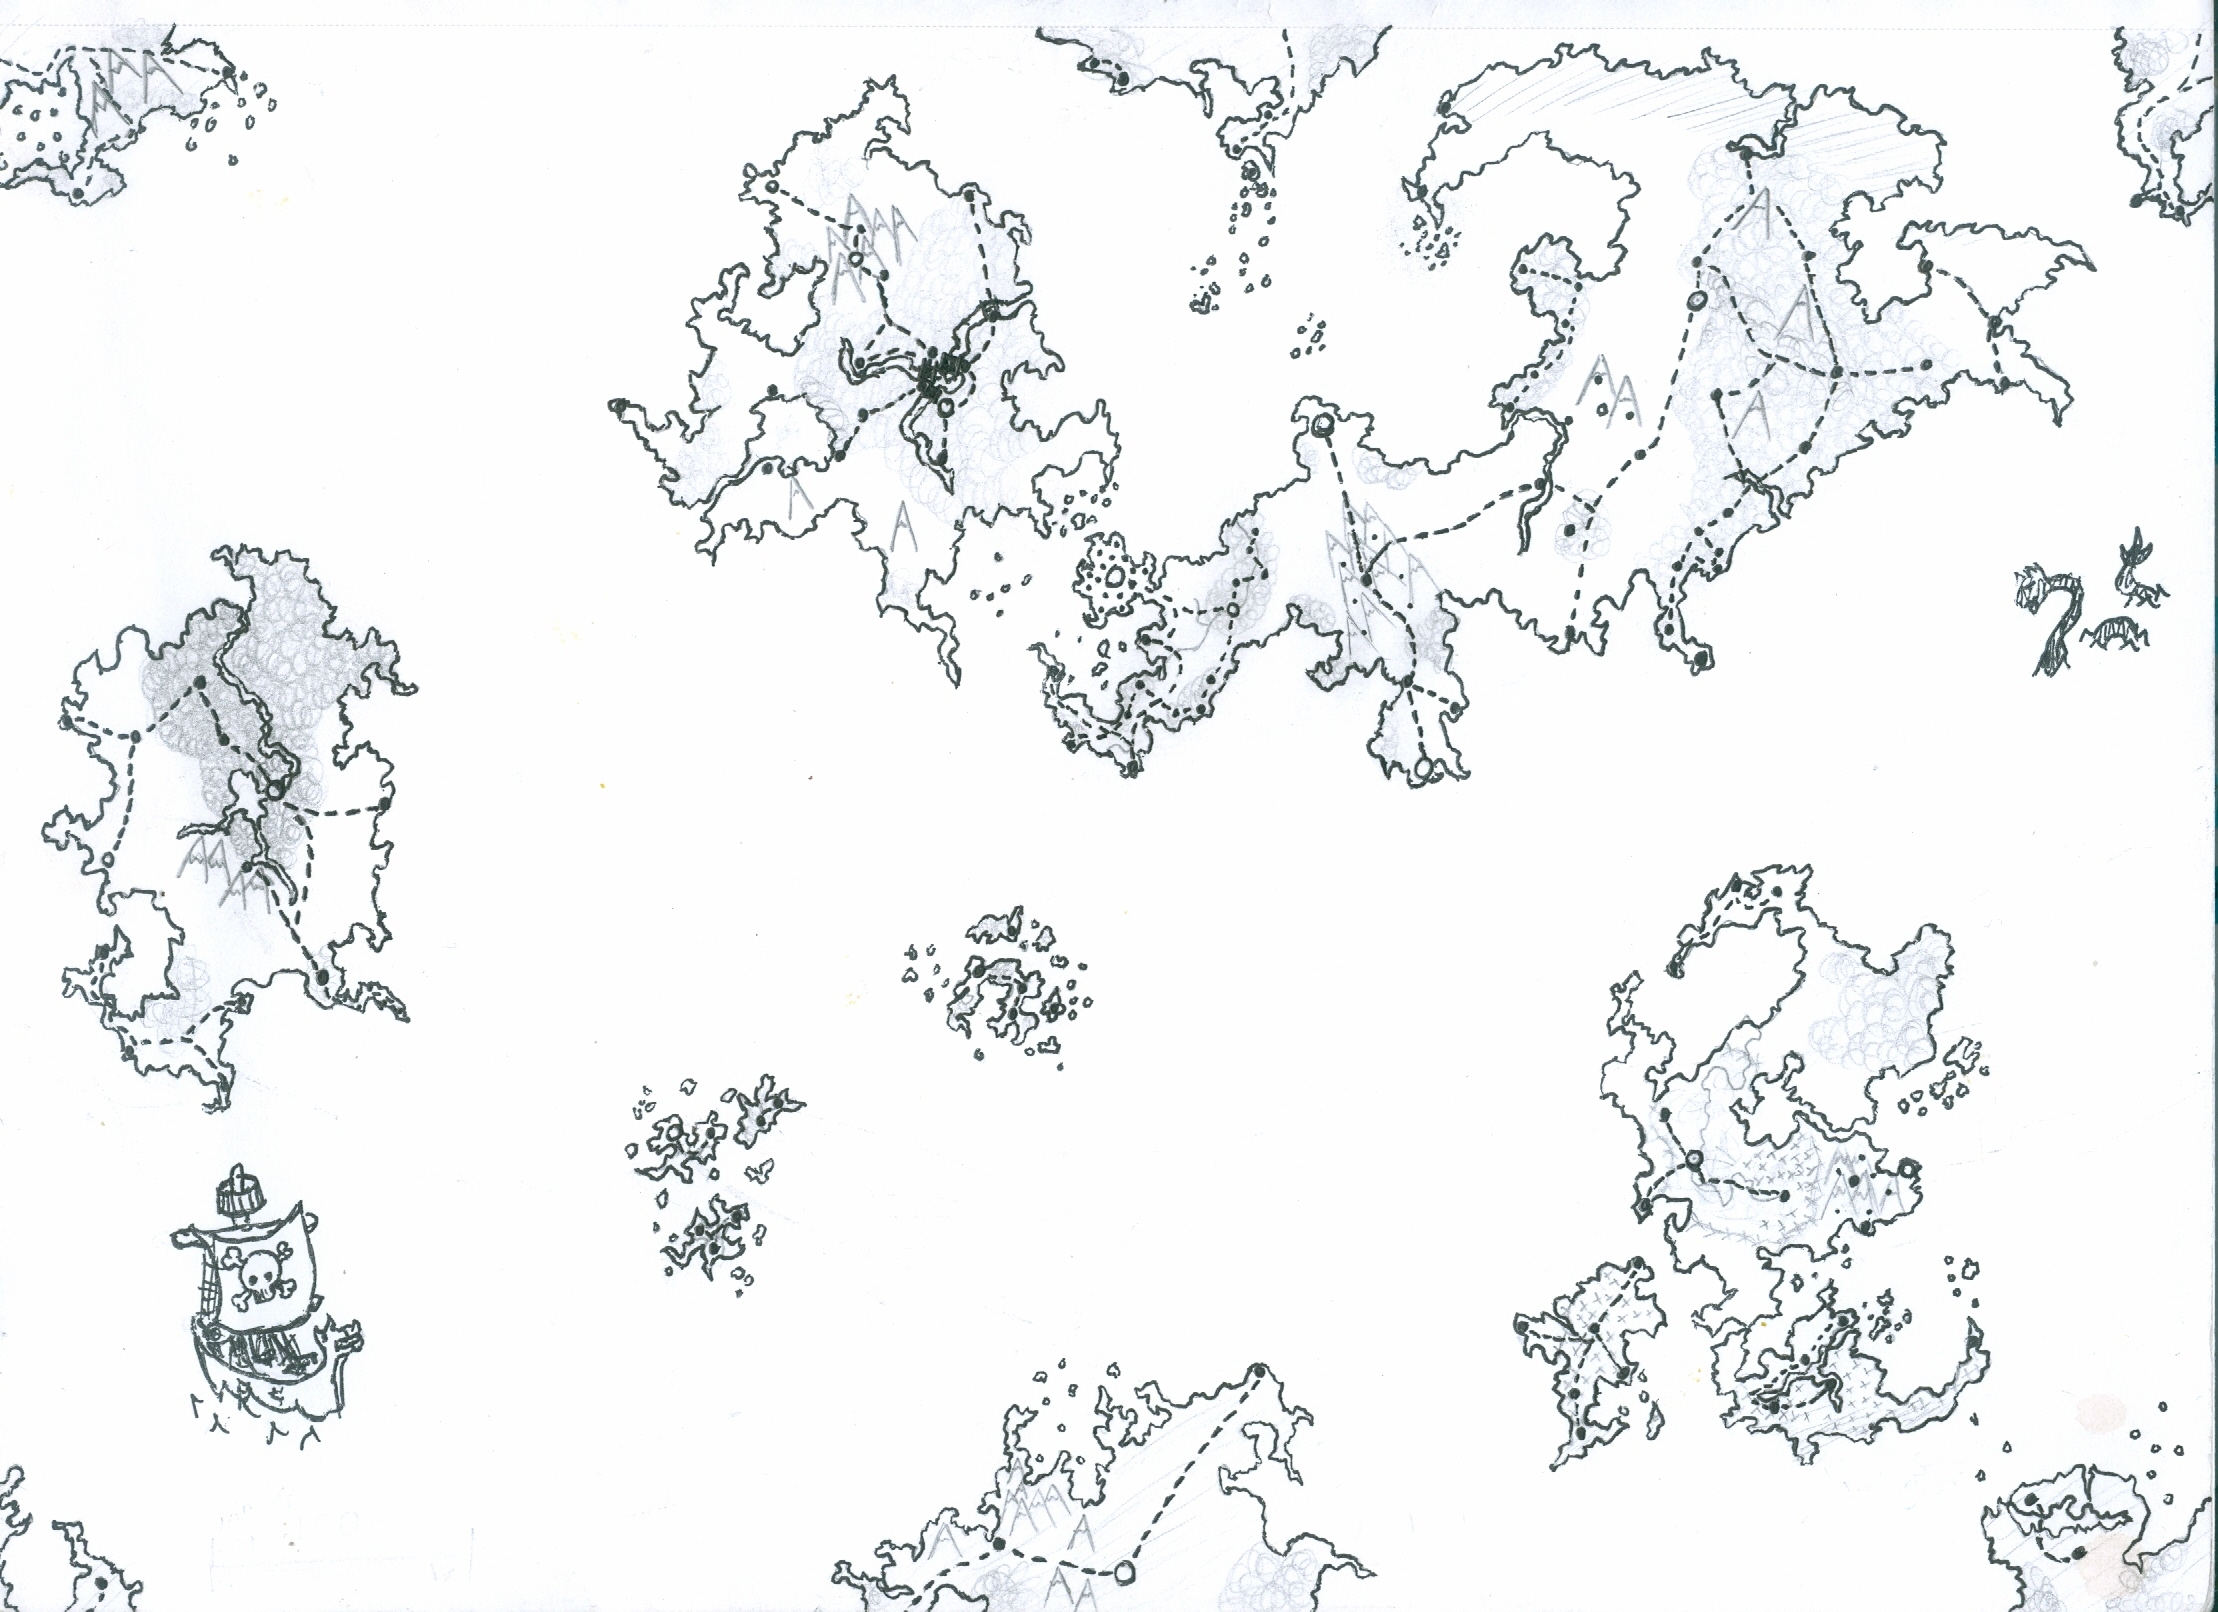 A map of the world Mythe. Second Map I've ever done. Has some history. Only this version available.